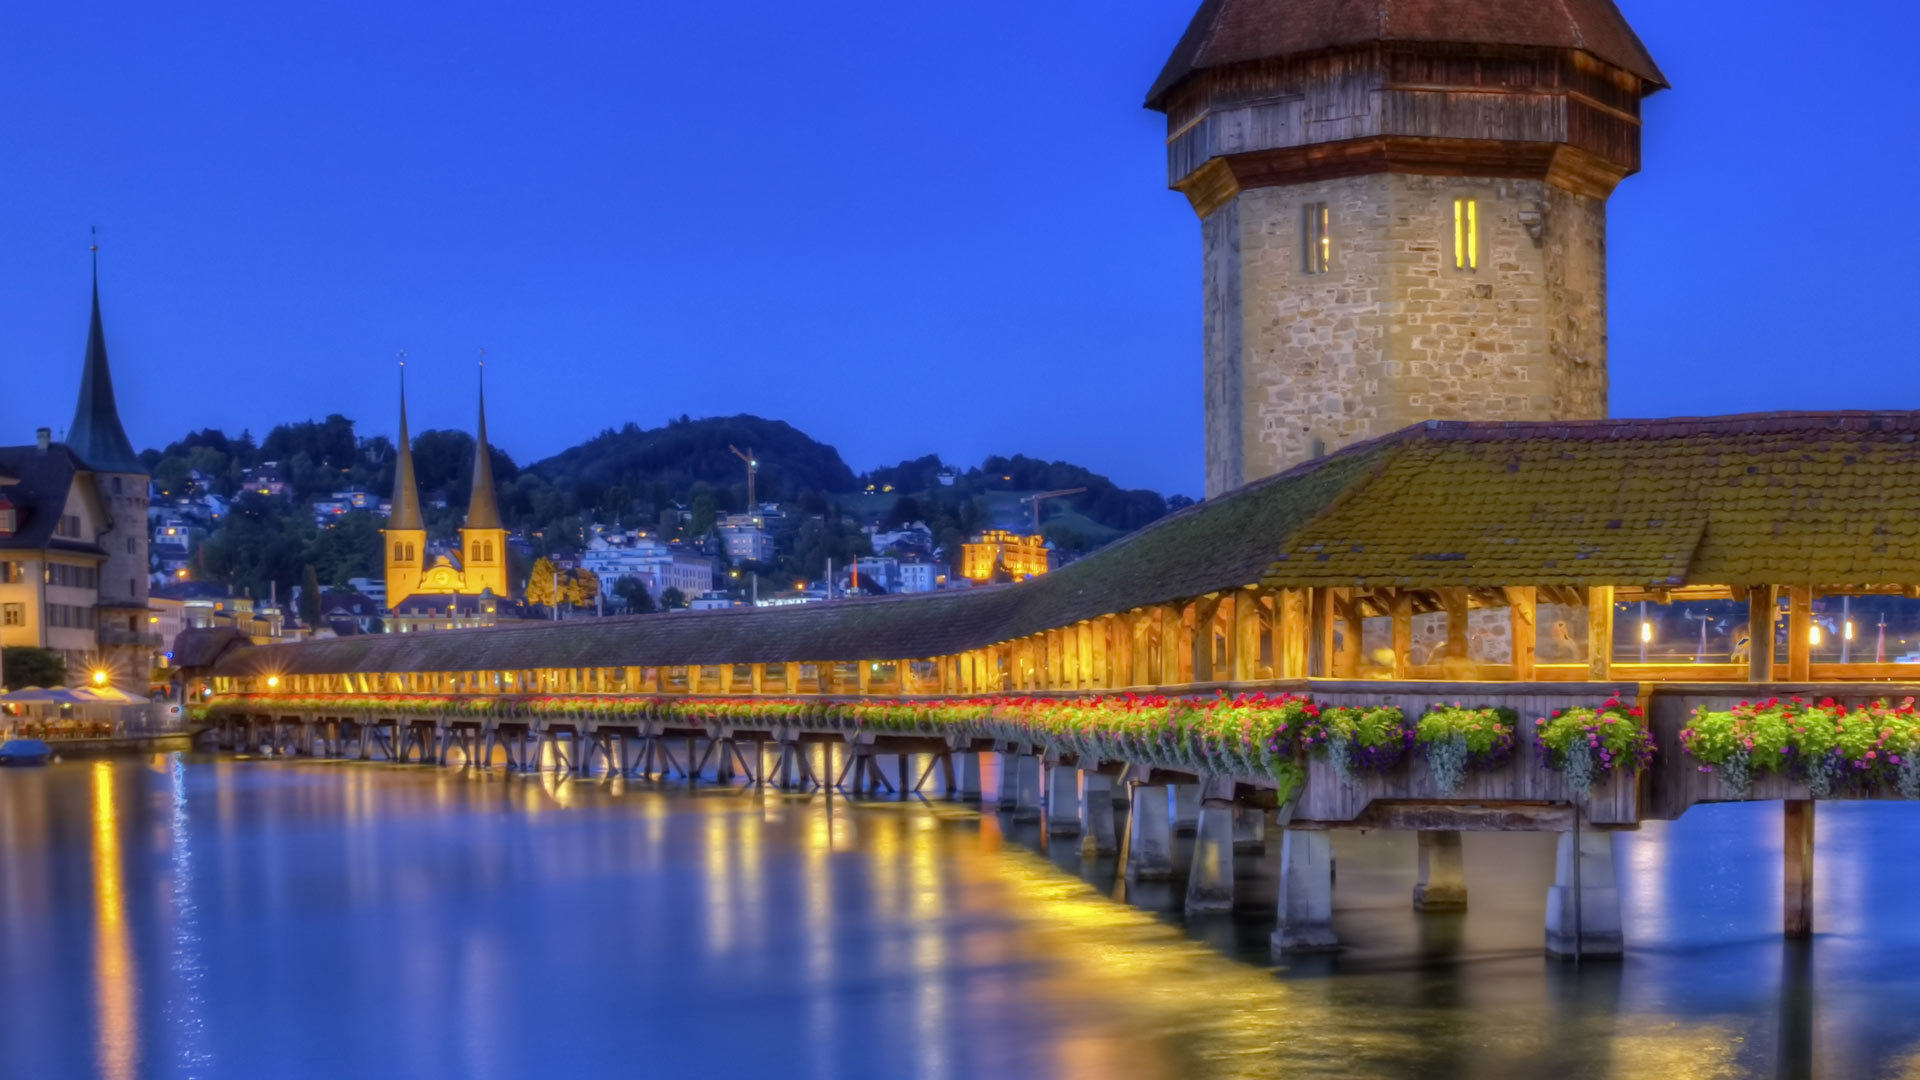 Chapel bridge or Kapellbrucke, Lucerne, Switzerland